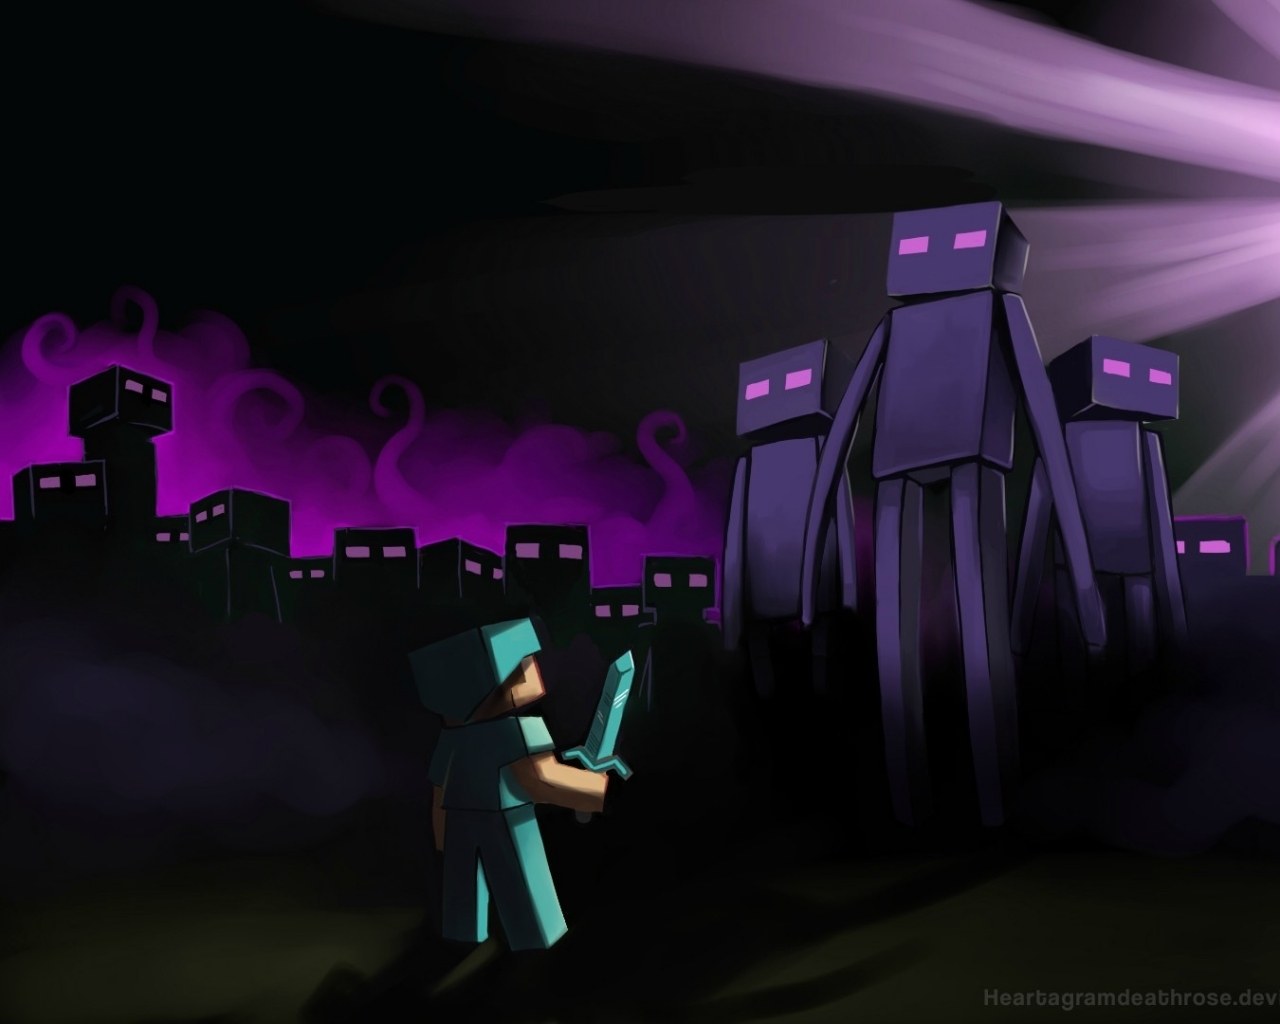 enderman minecraft wallpaper wolf - photo #20